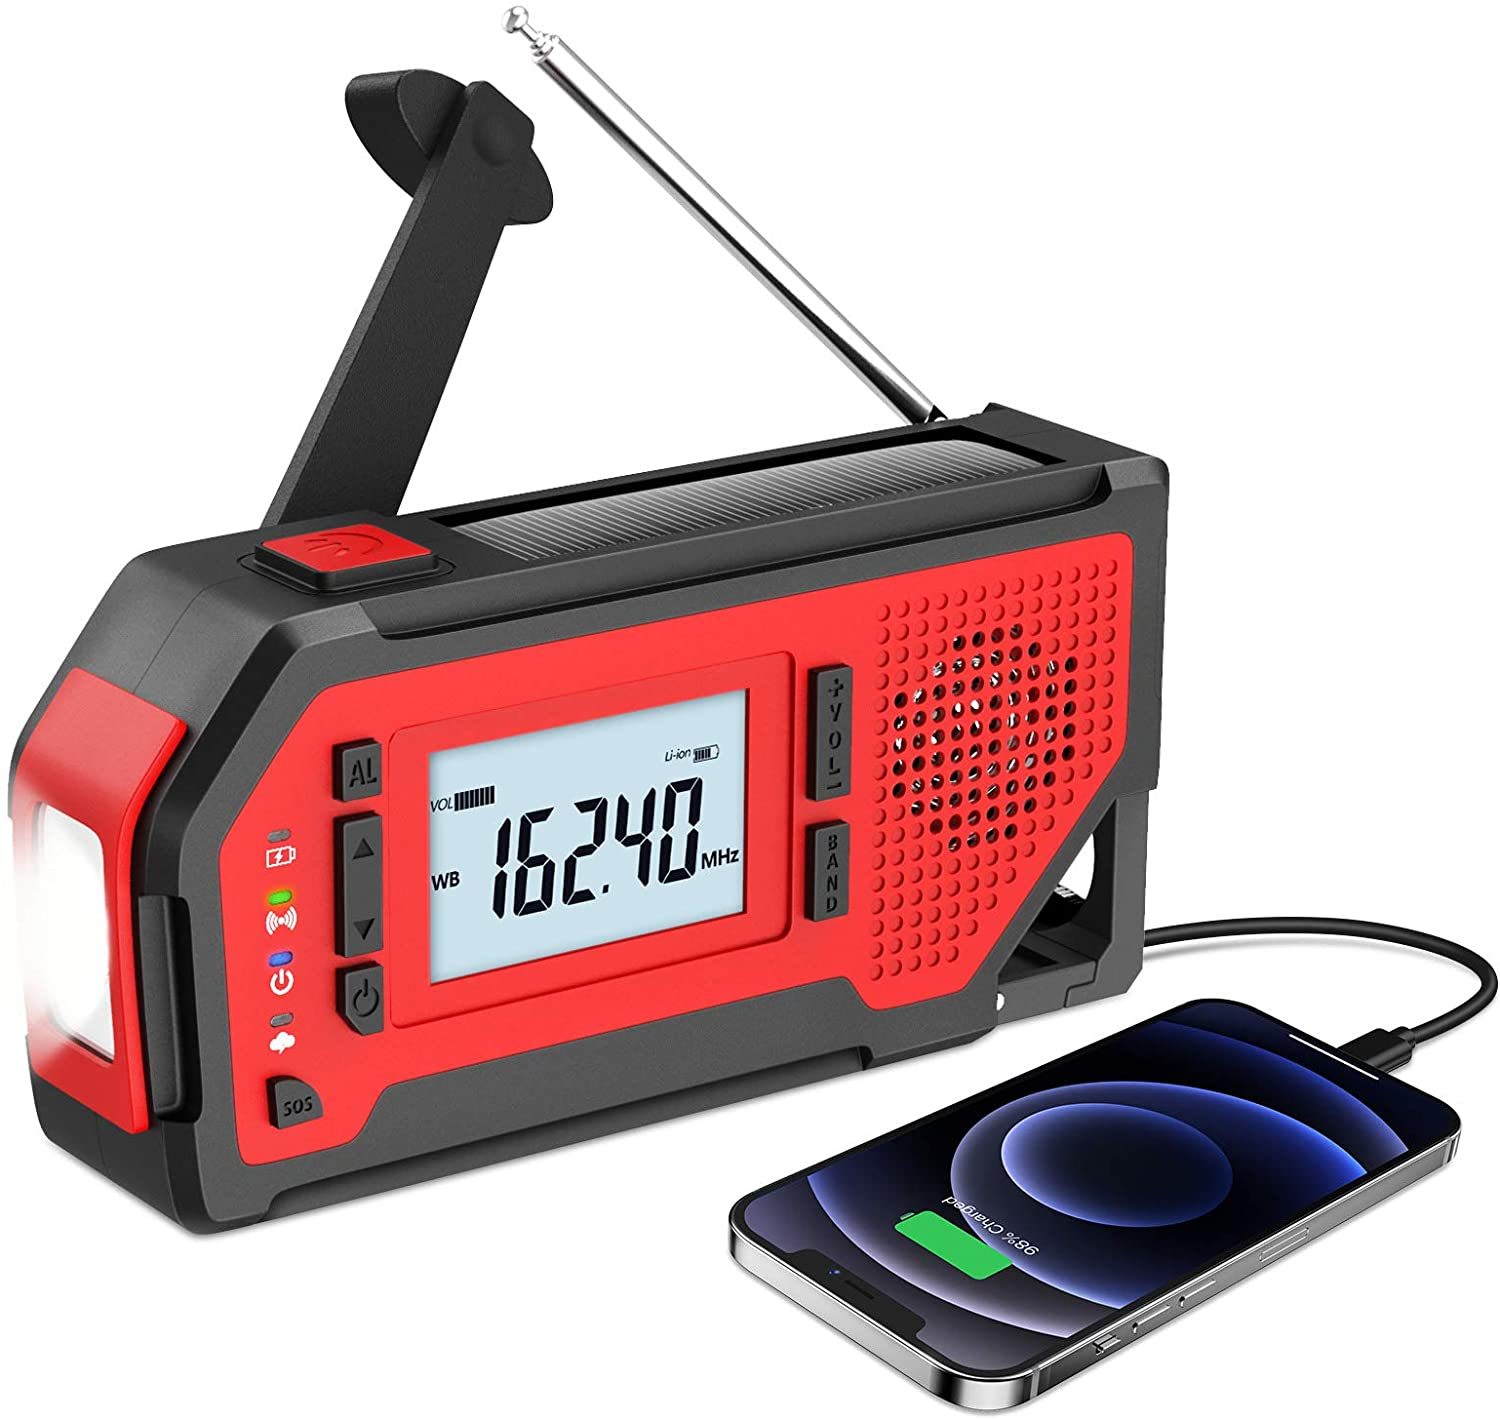 (New Version) Emergency Hand Crank Weather Radio, Self Powered Portable NOAA Radio with LED Display for Household, Outdoor, with AM/FM/WB, LED Flashlight, 2000mAh Power Bank, SOS Alarm, Bottle Opener